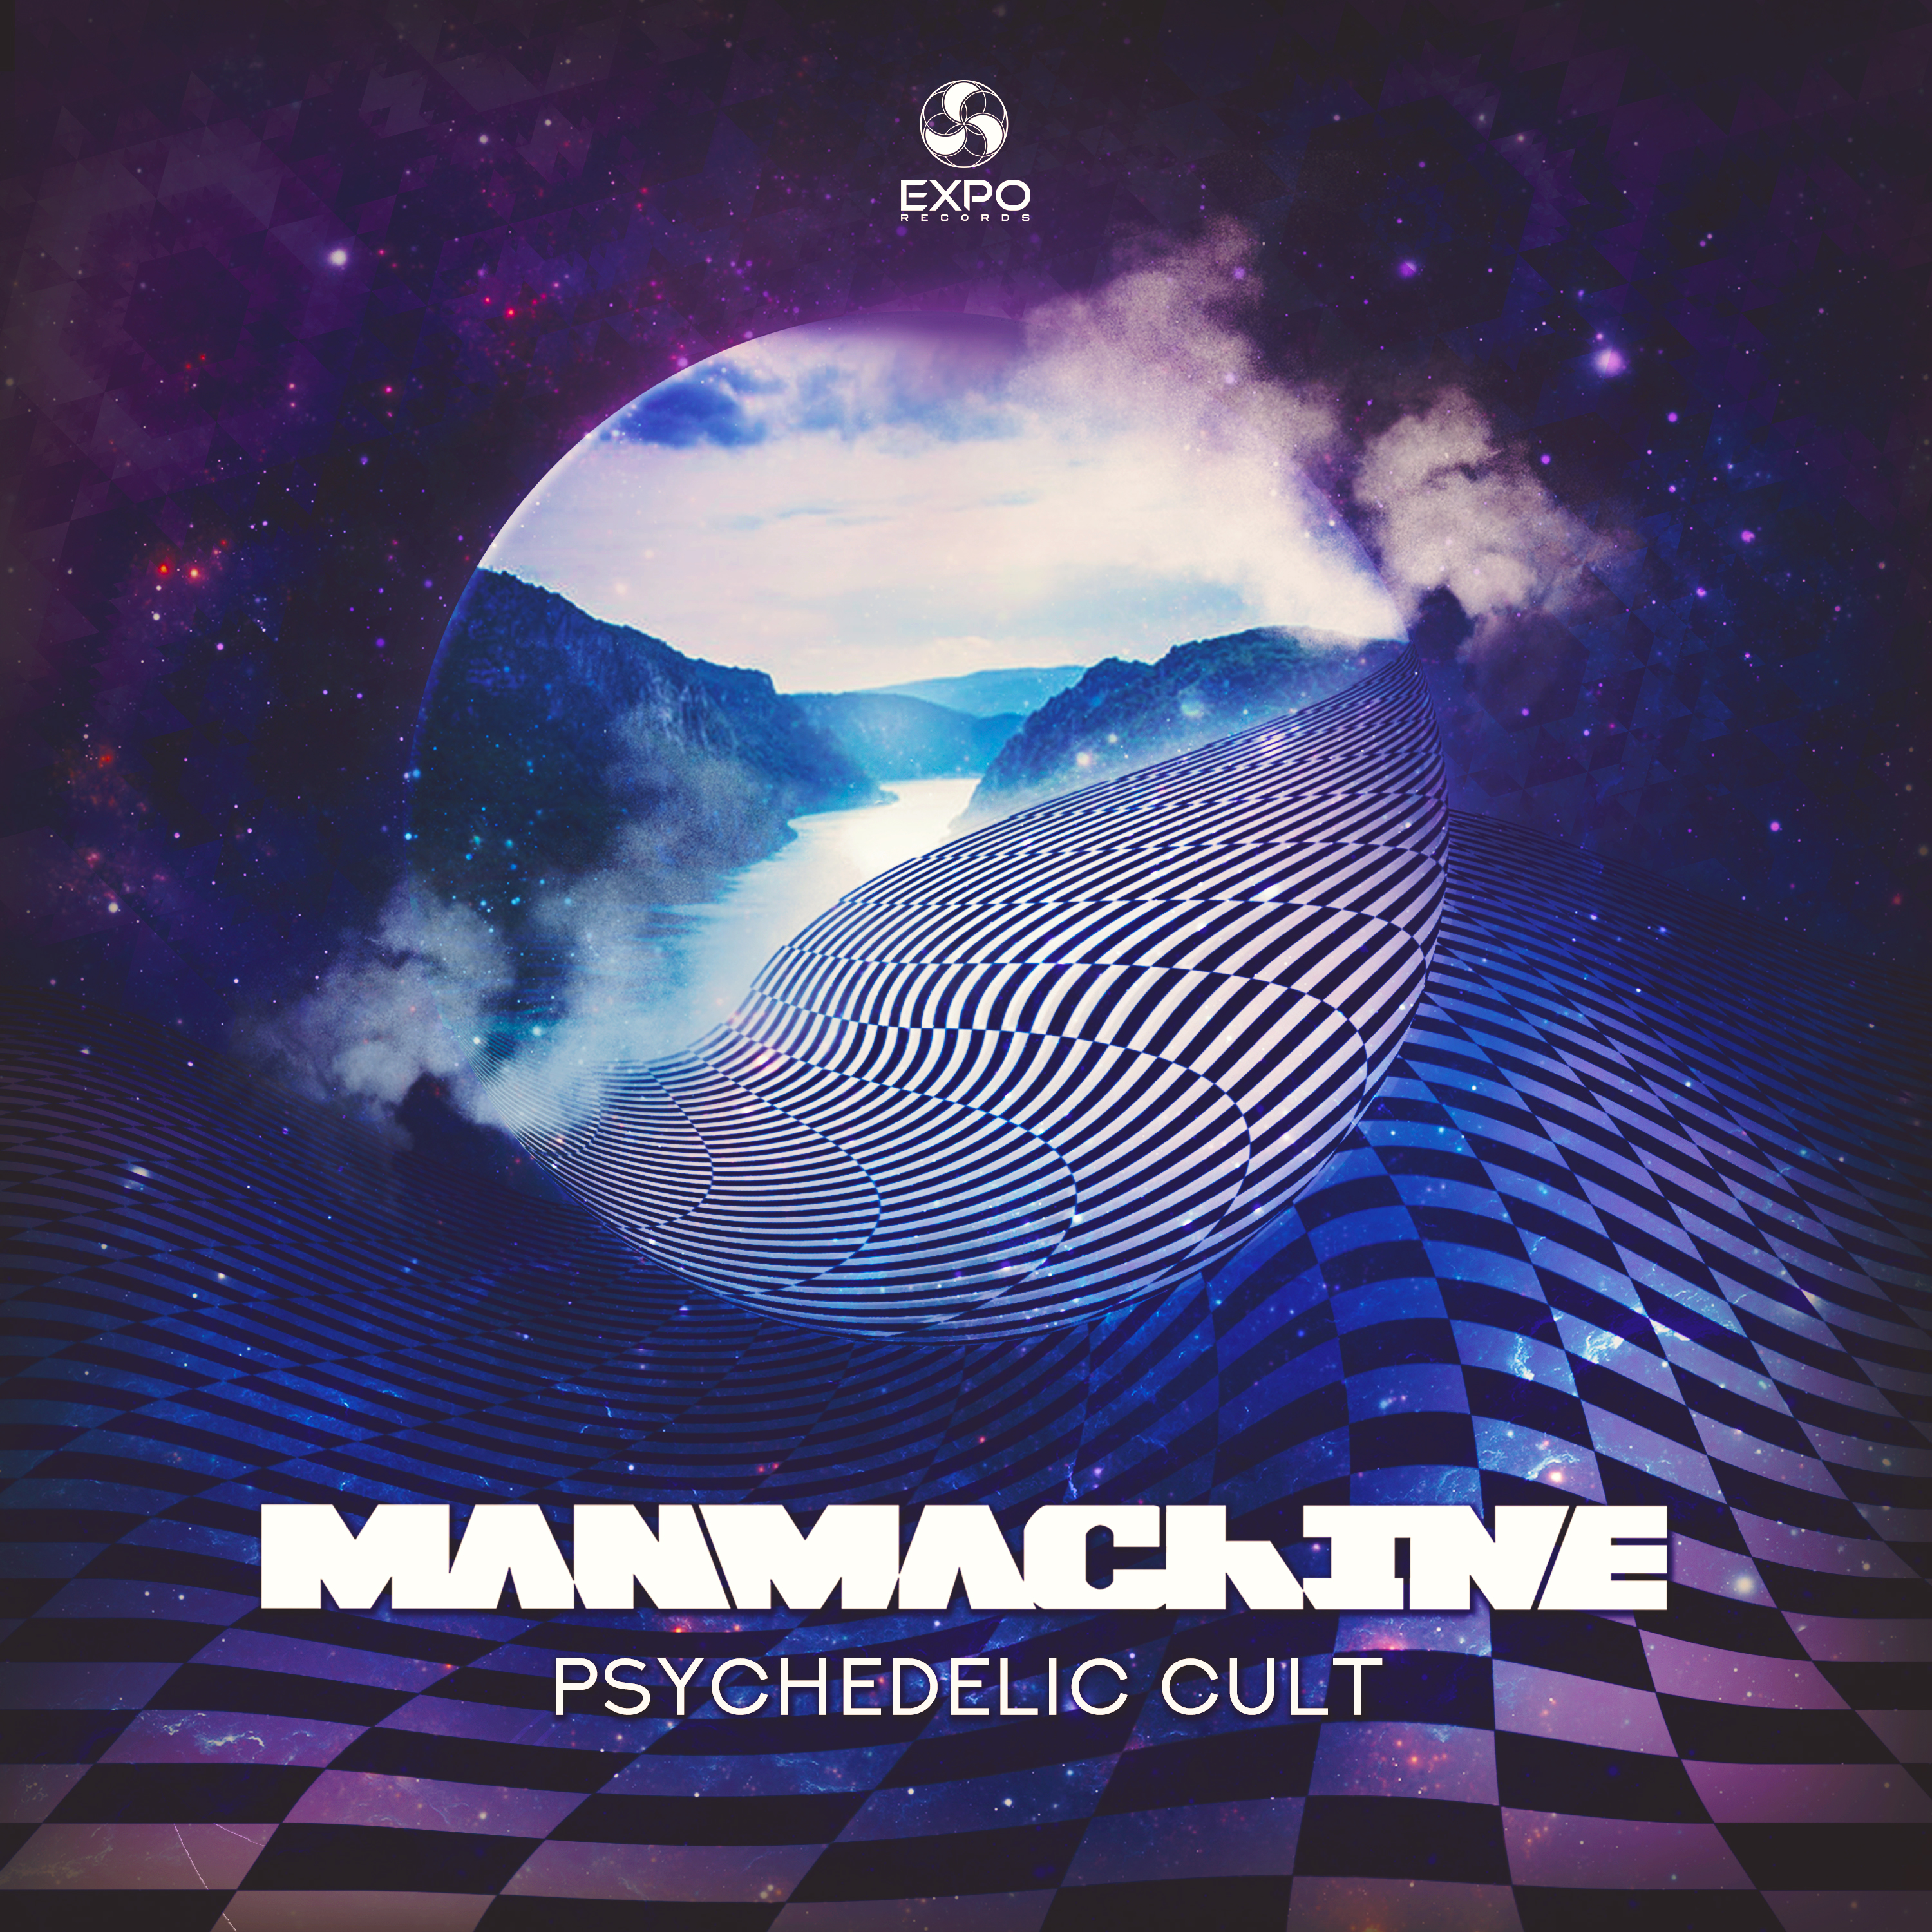 manmachine - psychedelic cult